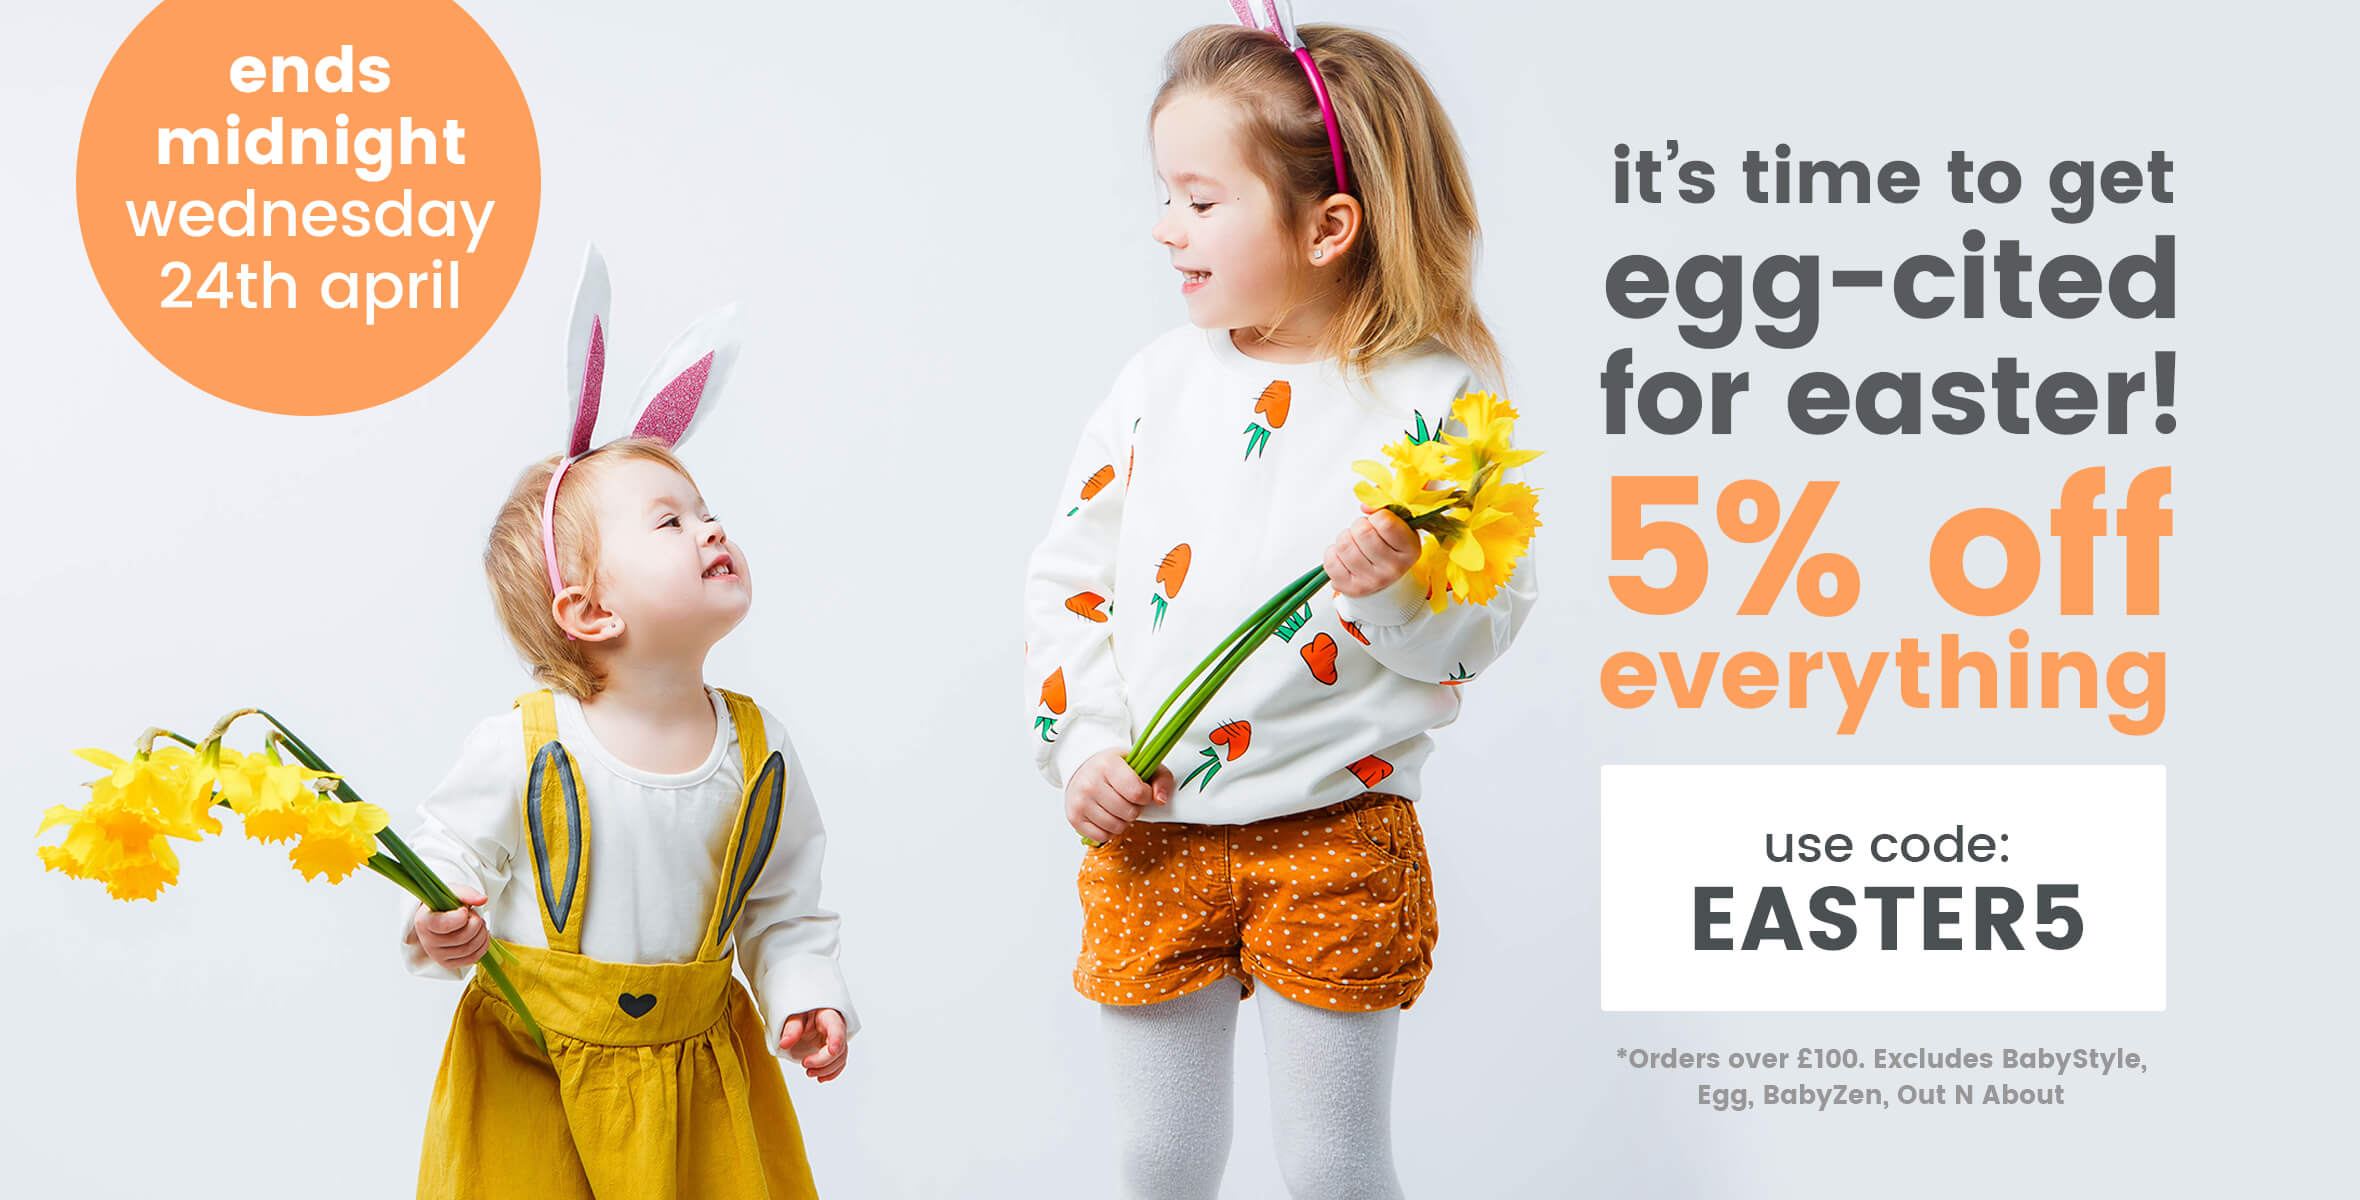 5% Off Everything - EASTER5